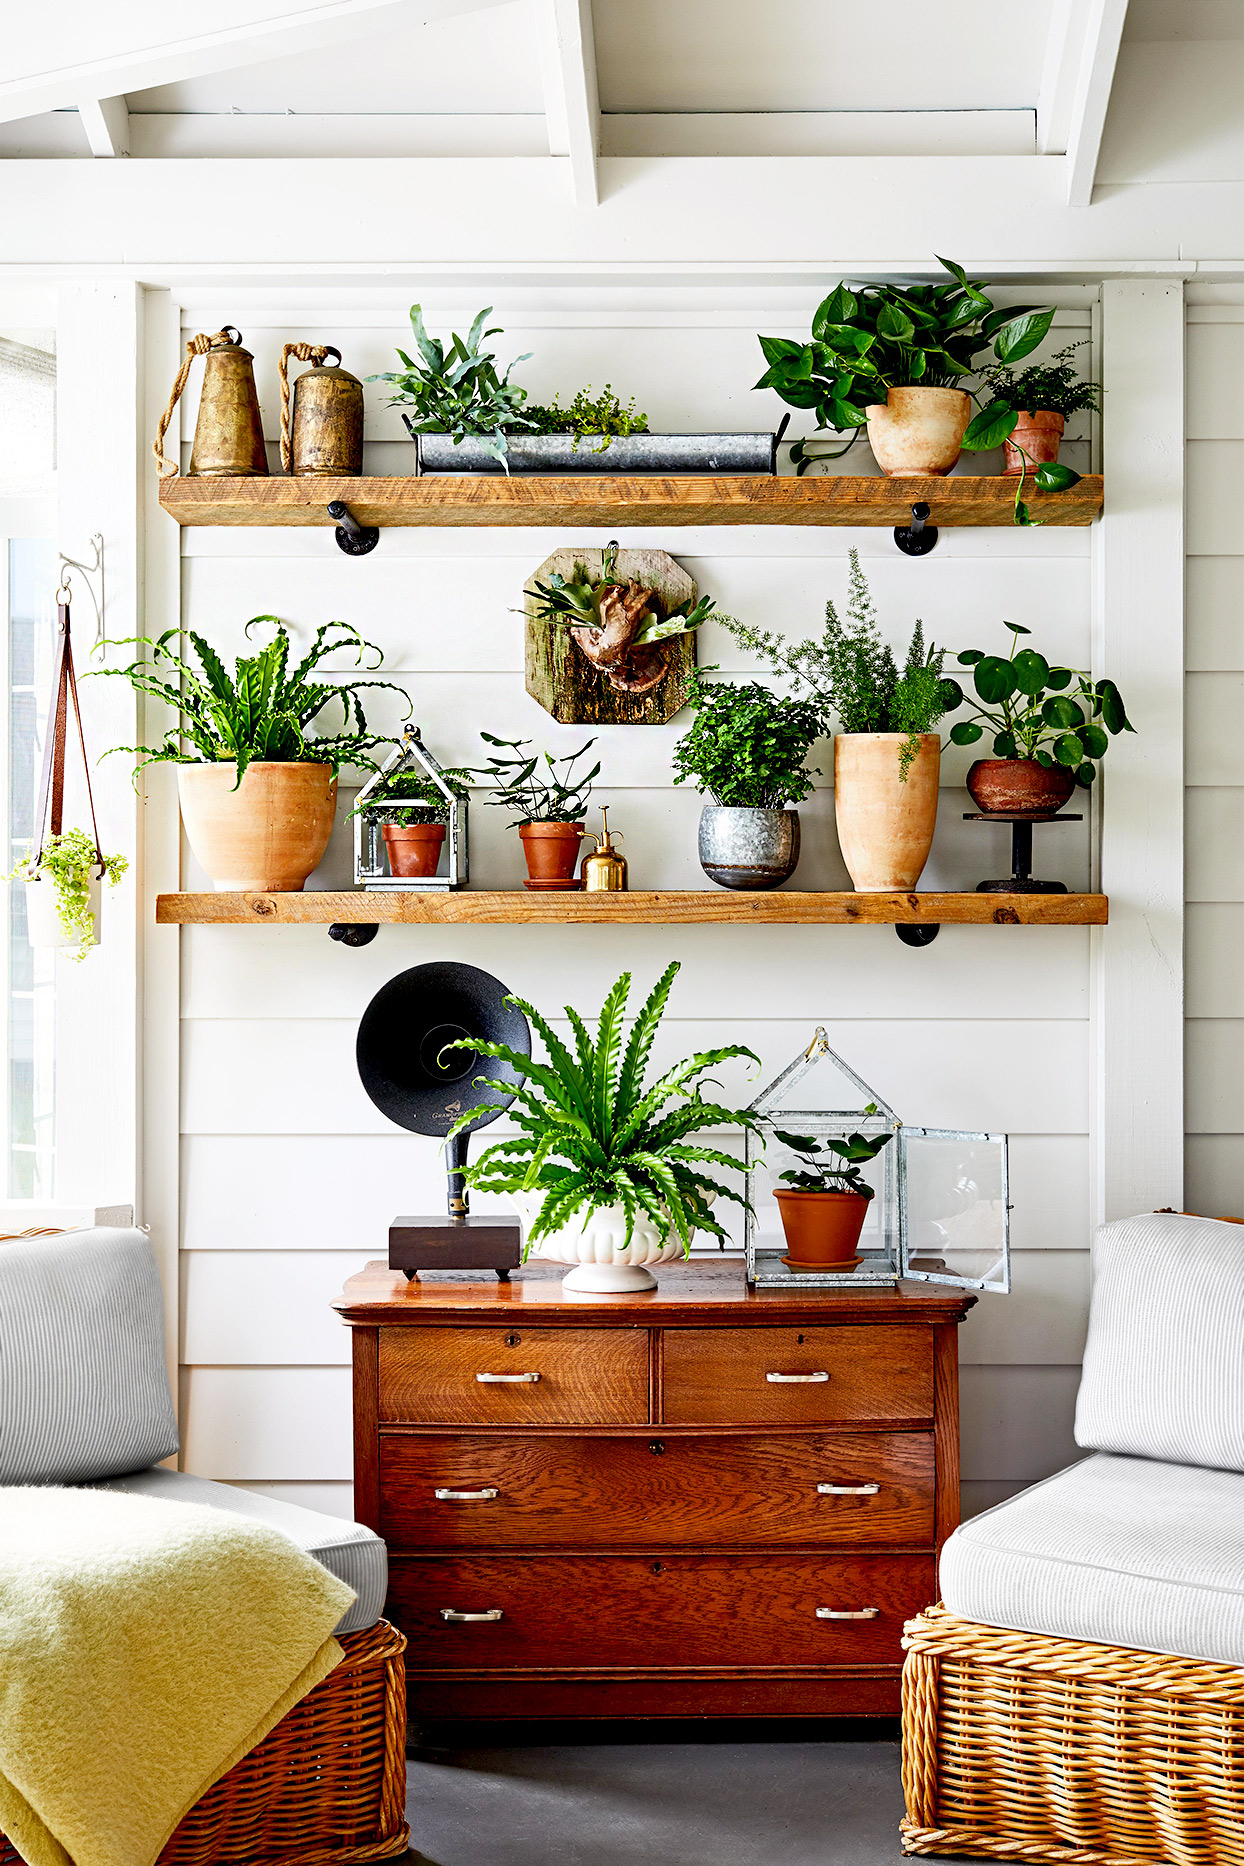 Indoor Garden Rooms Are the Hot New Trend on Pinterest—Here's How to Pull Them Off